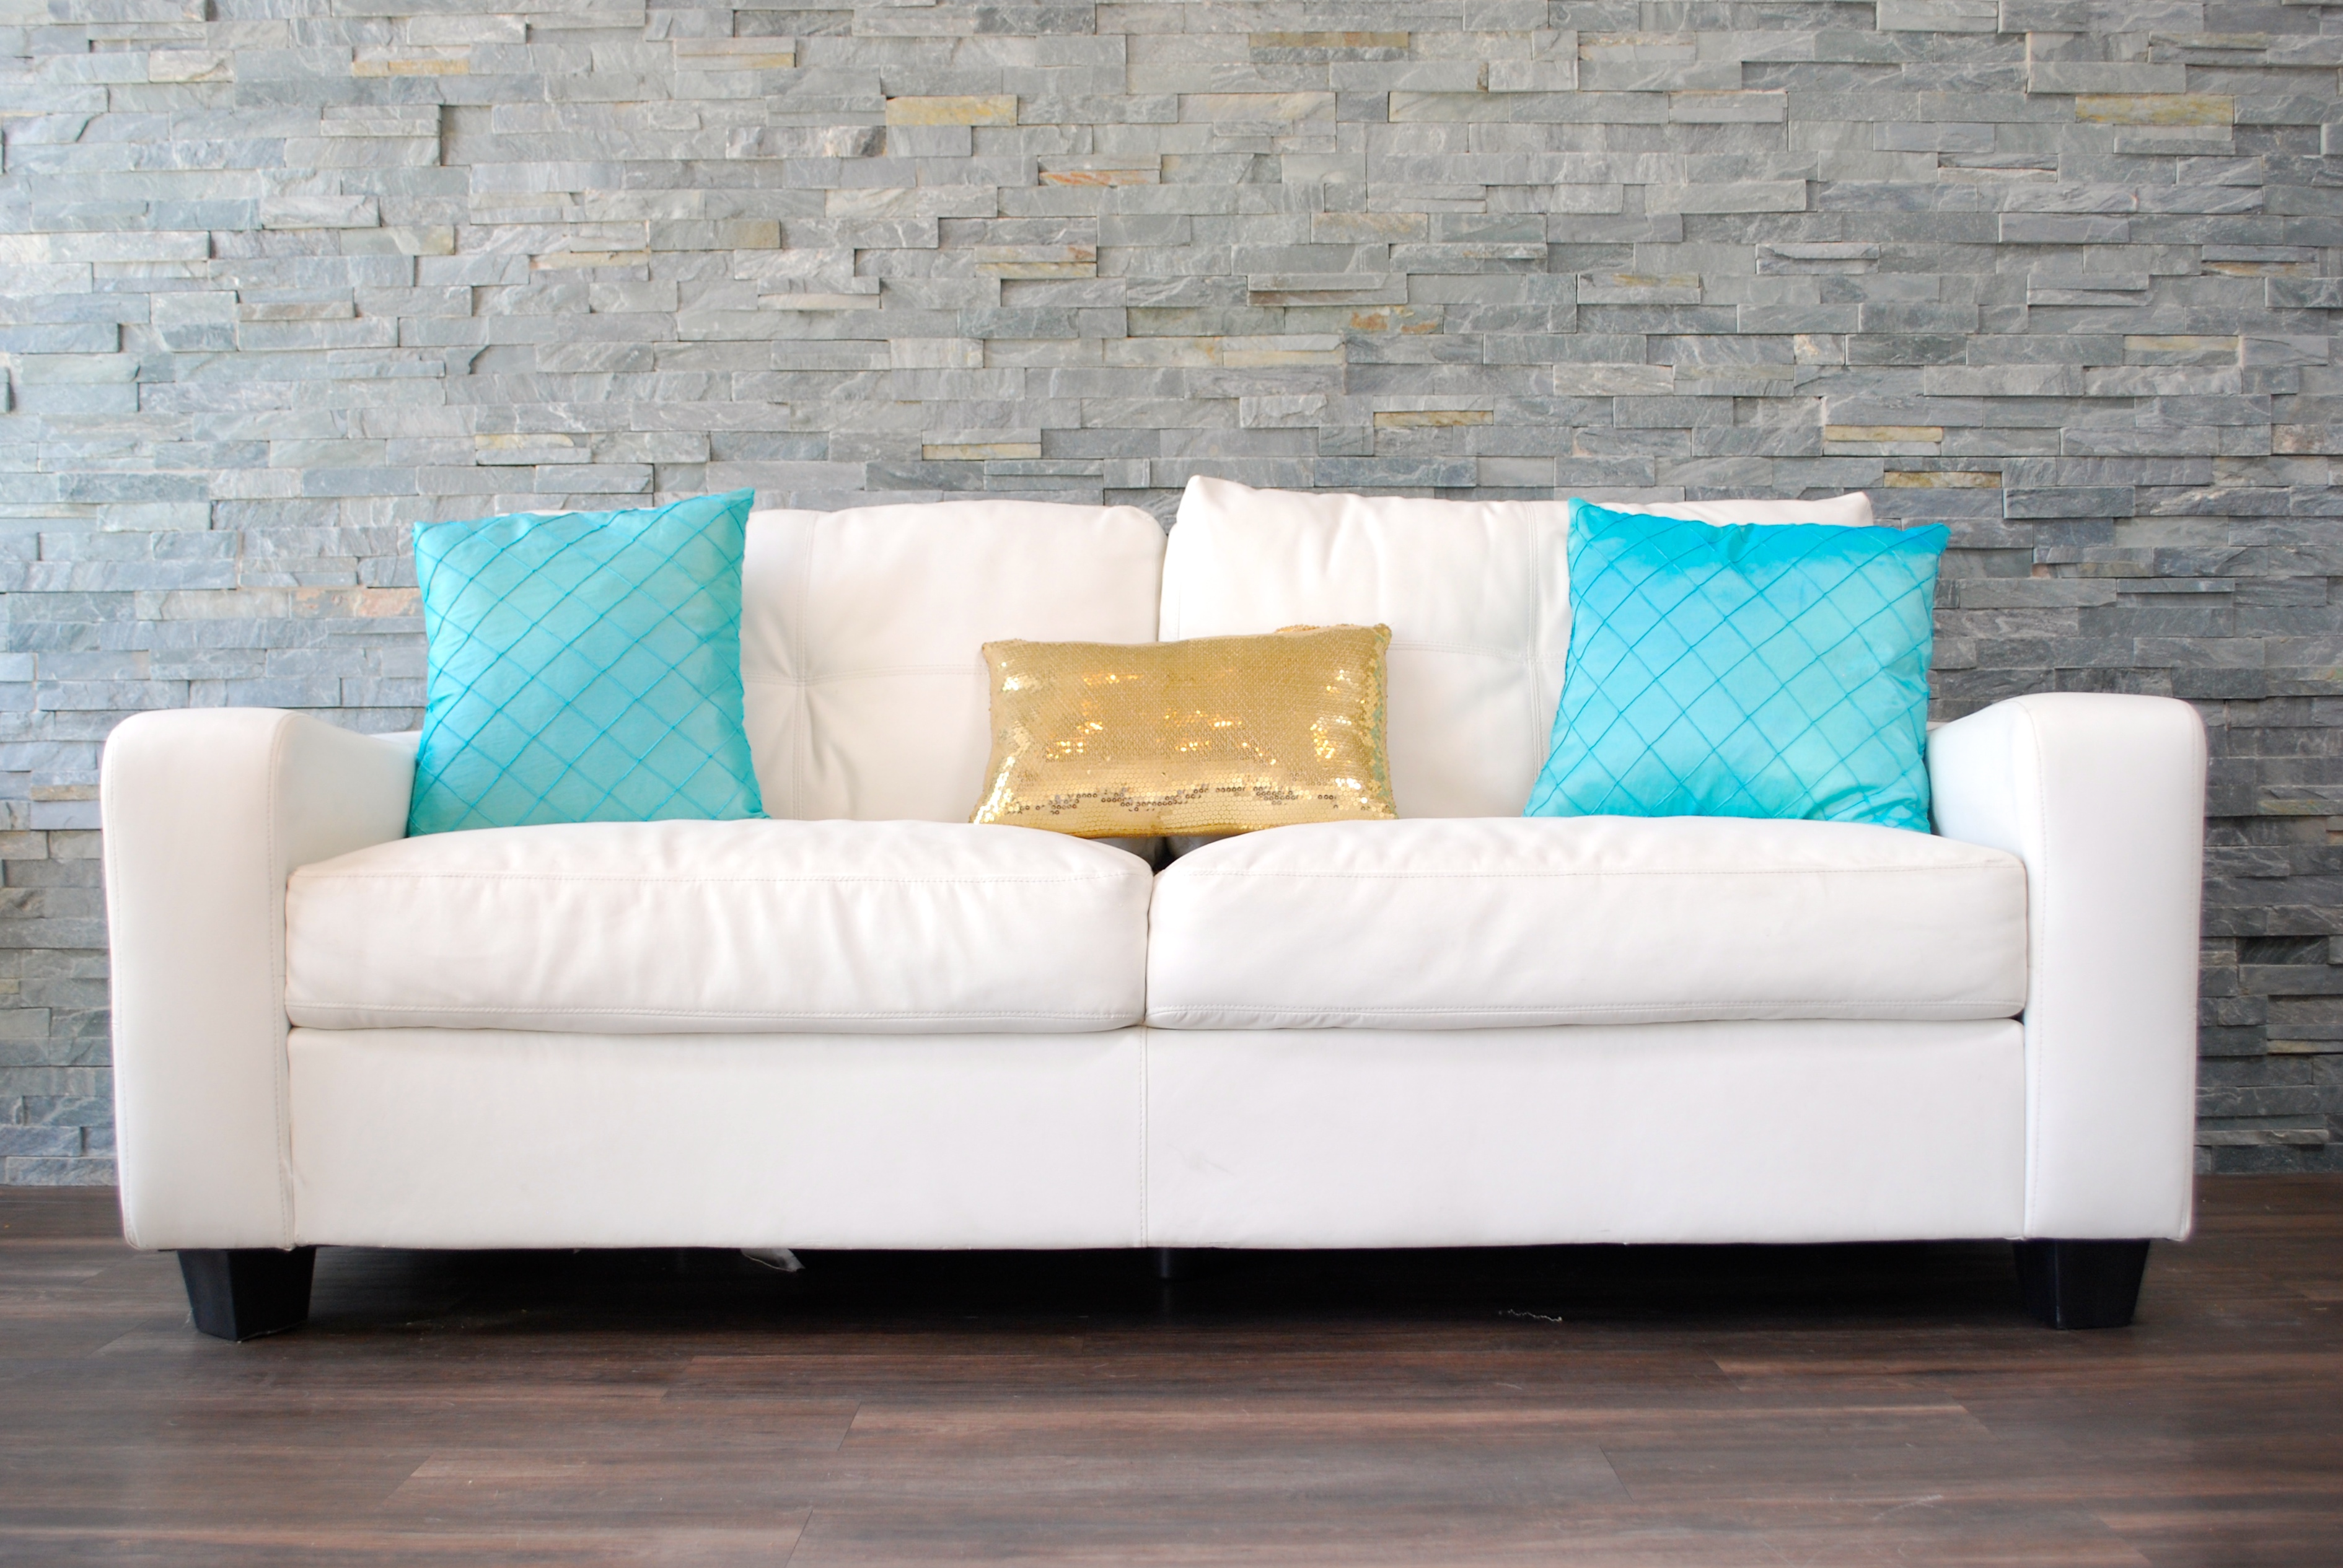 Throw Pillows For White Sofa : White Leather Plush Sofa (decorative pillows not included) Platinum Event Rentals